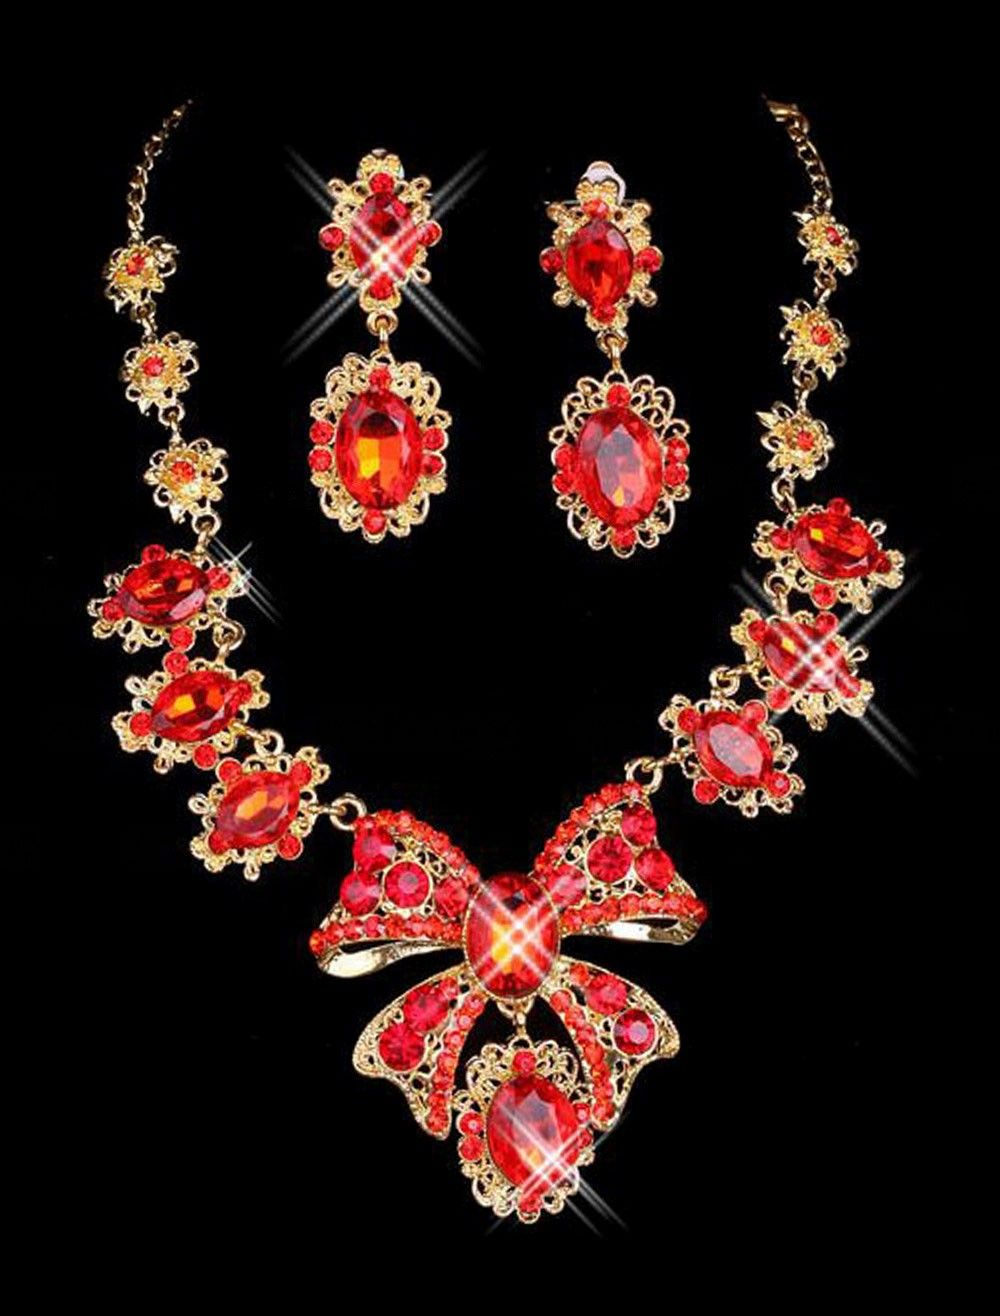 Exotic Red Diamond Bow Jewelry Set For Bridal Wedding Accessories